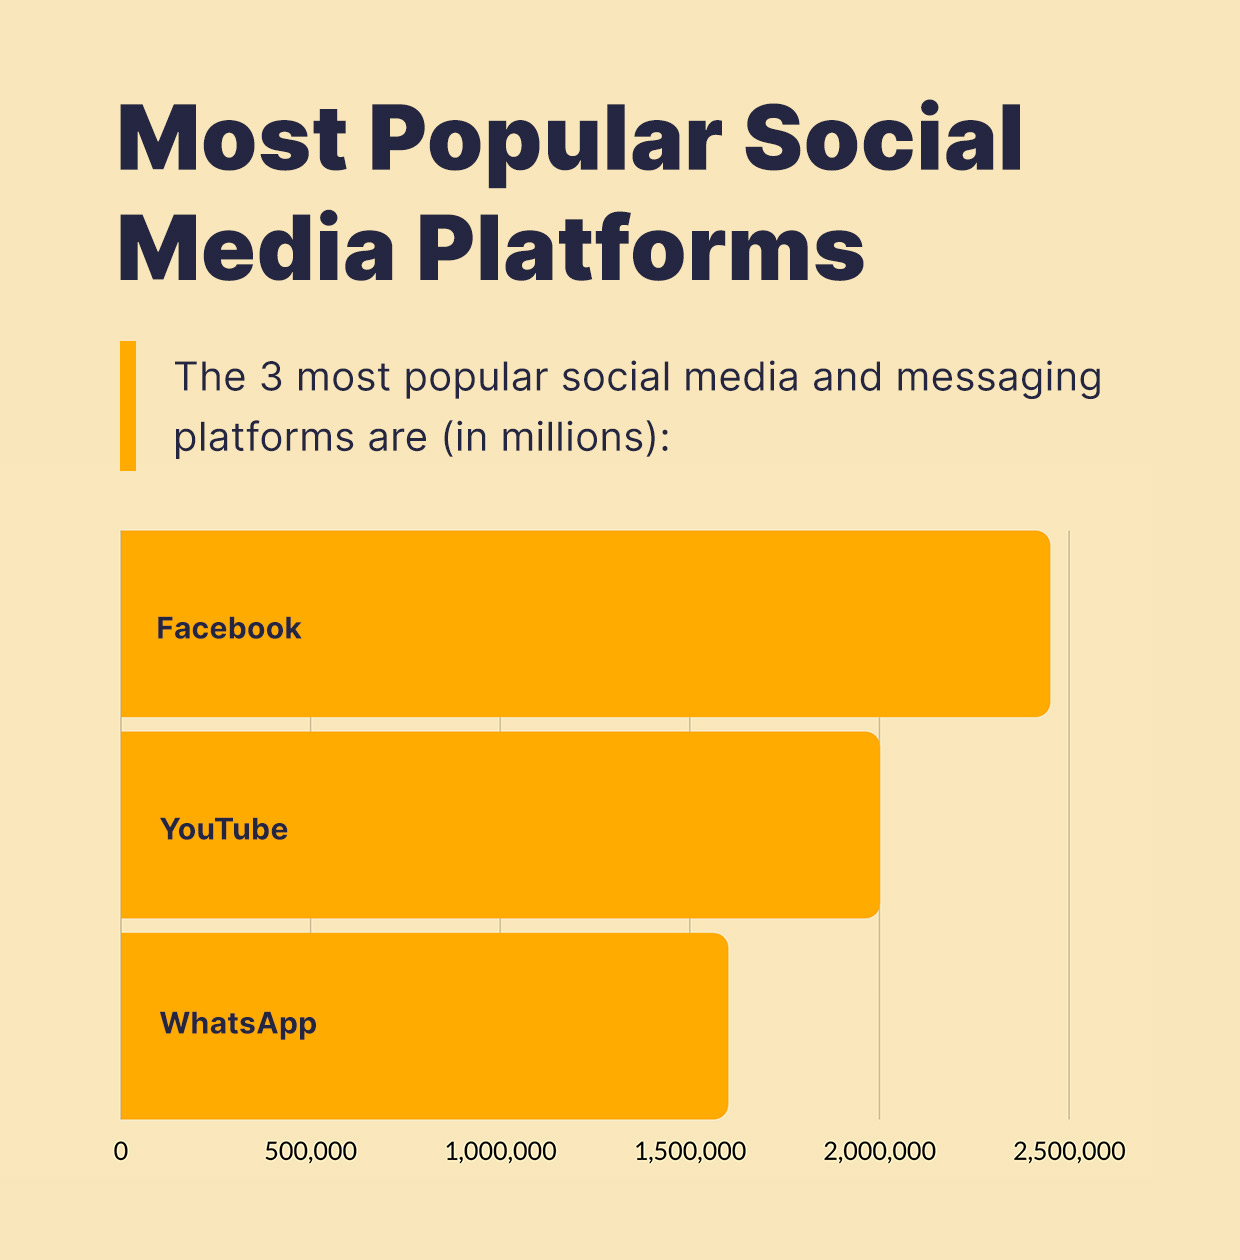 3 most popular social media and messaging platforms.